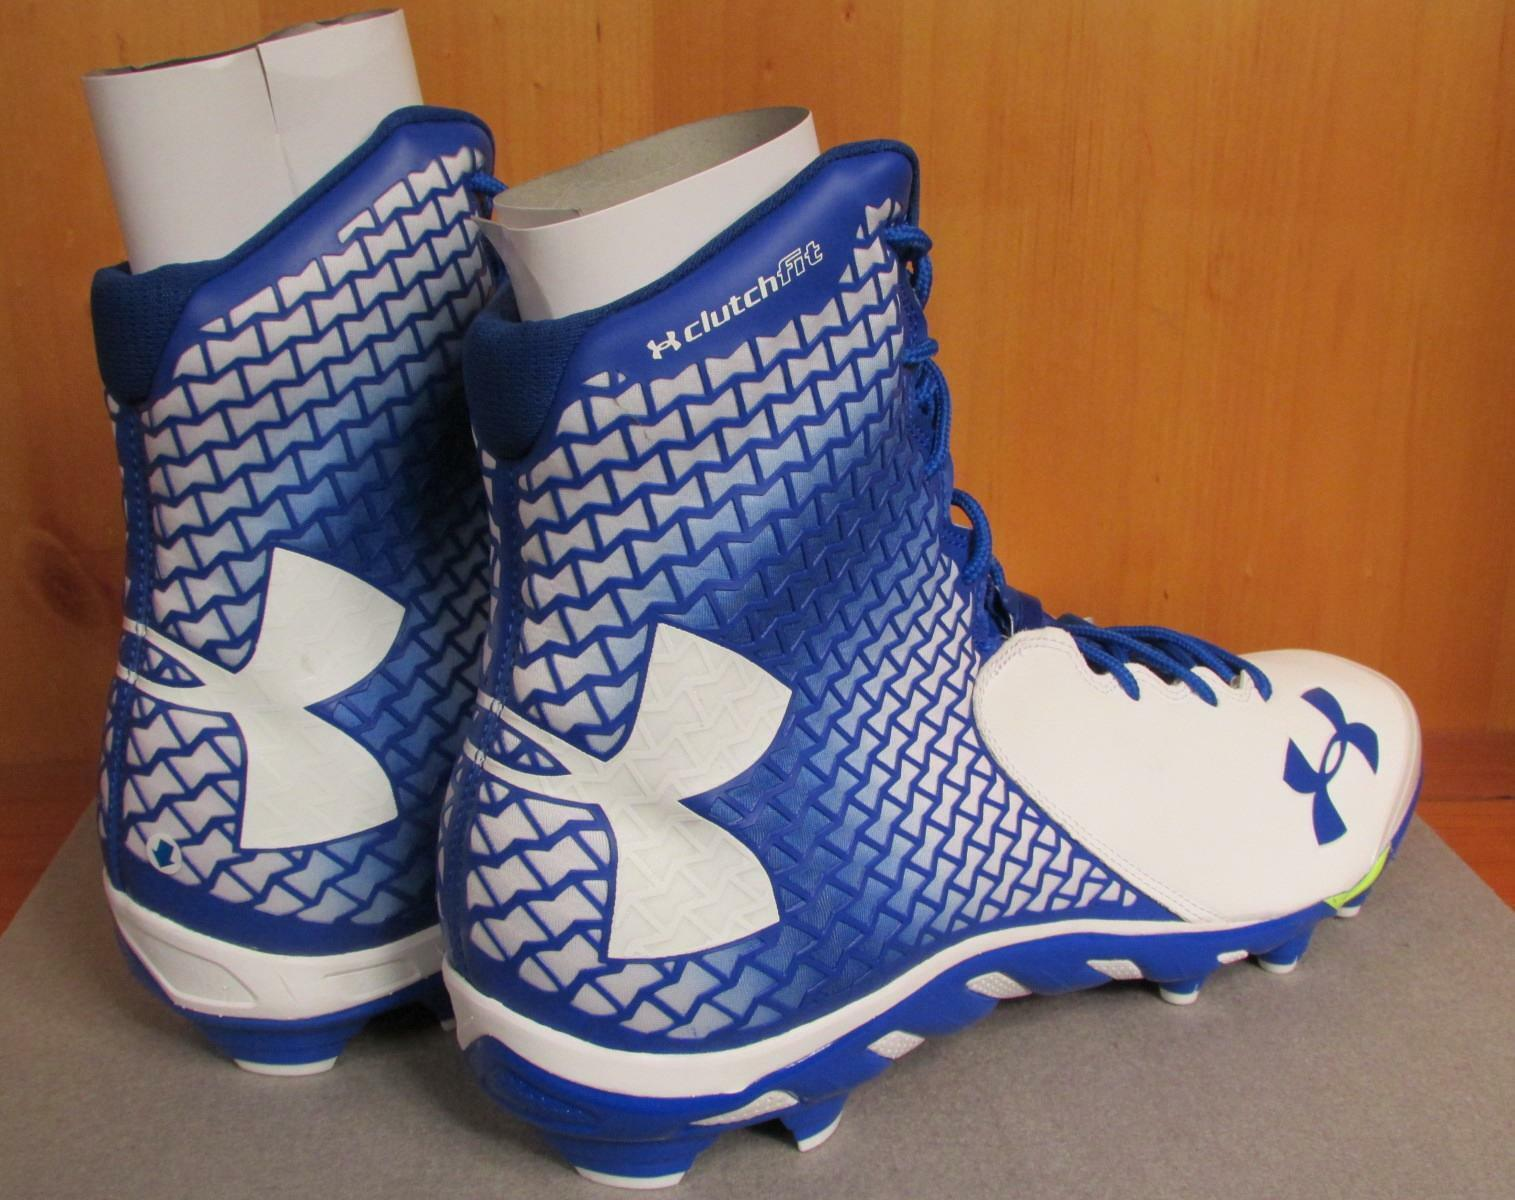 New! Under Armour Brawler Football Shoes Shoes Football Cleats Spine Sz.16 Power clamp Ankle c32e51